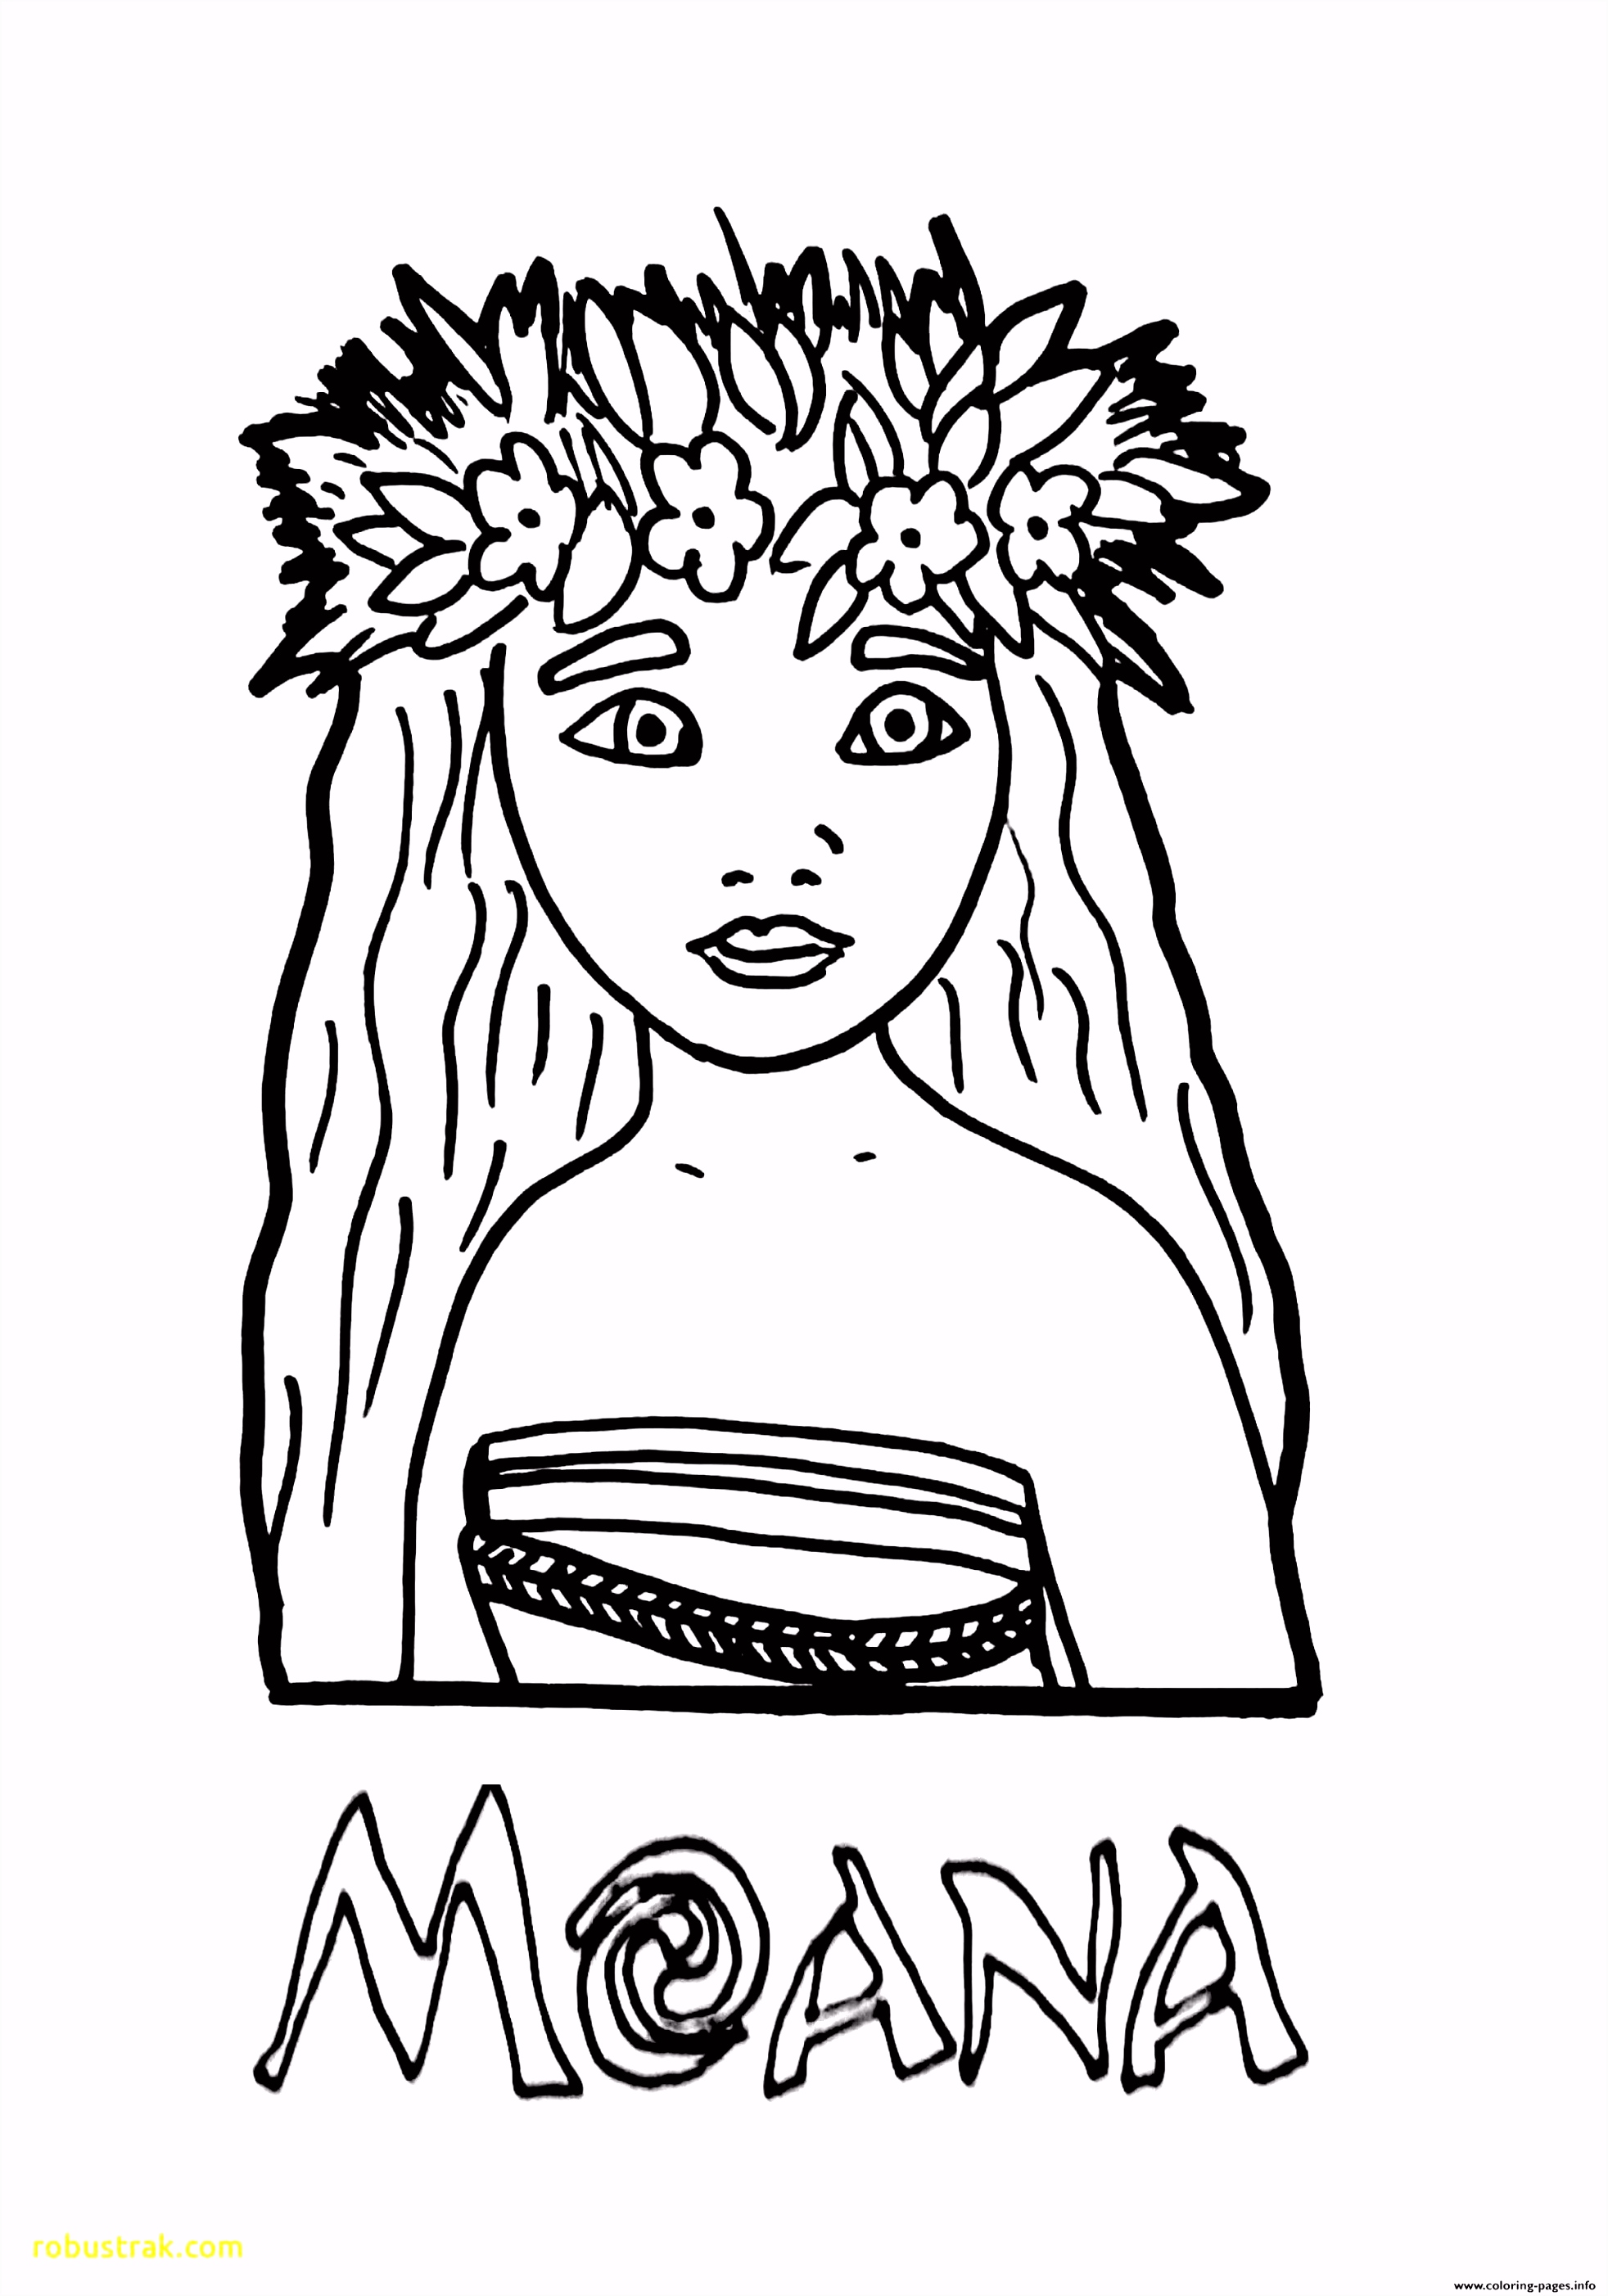 Coloring Pages Moana Best Kleurplaten Google Zoeken Disney Quilts